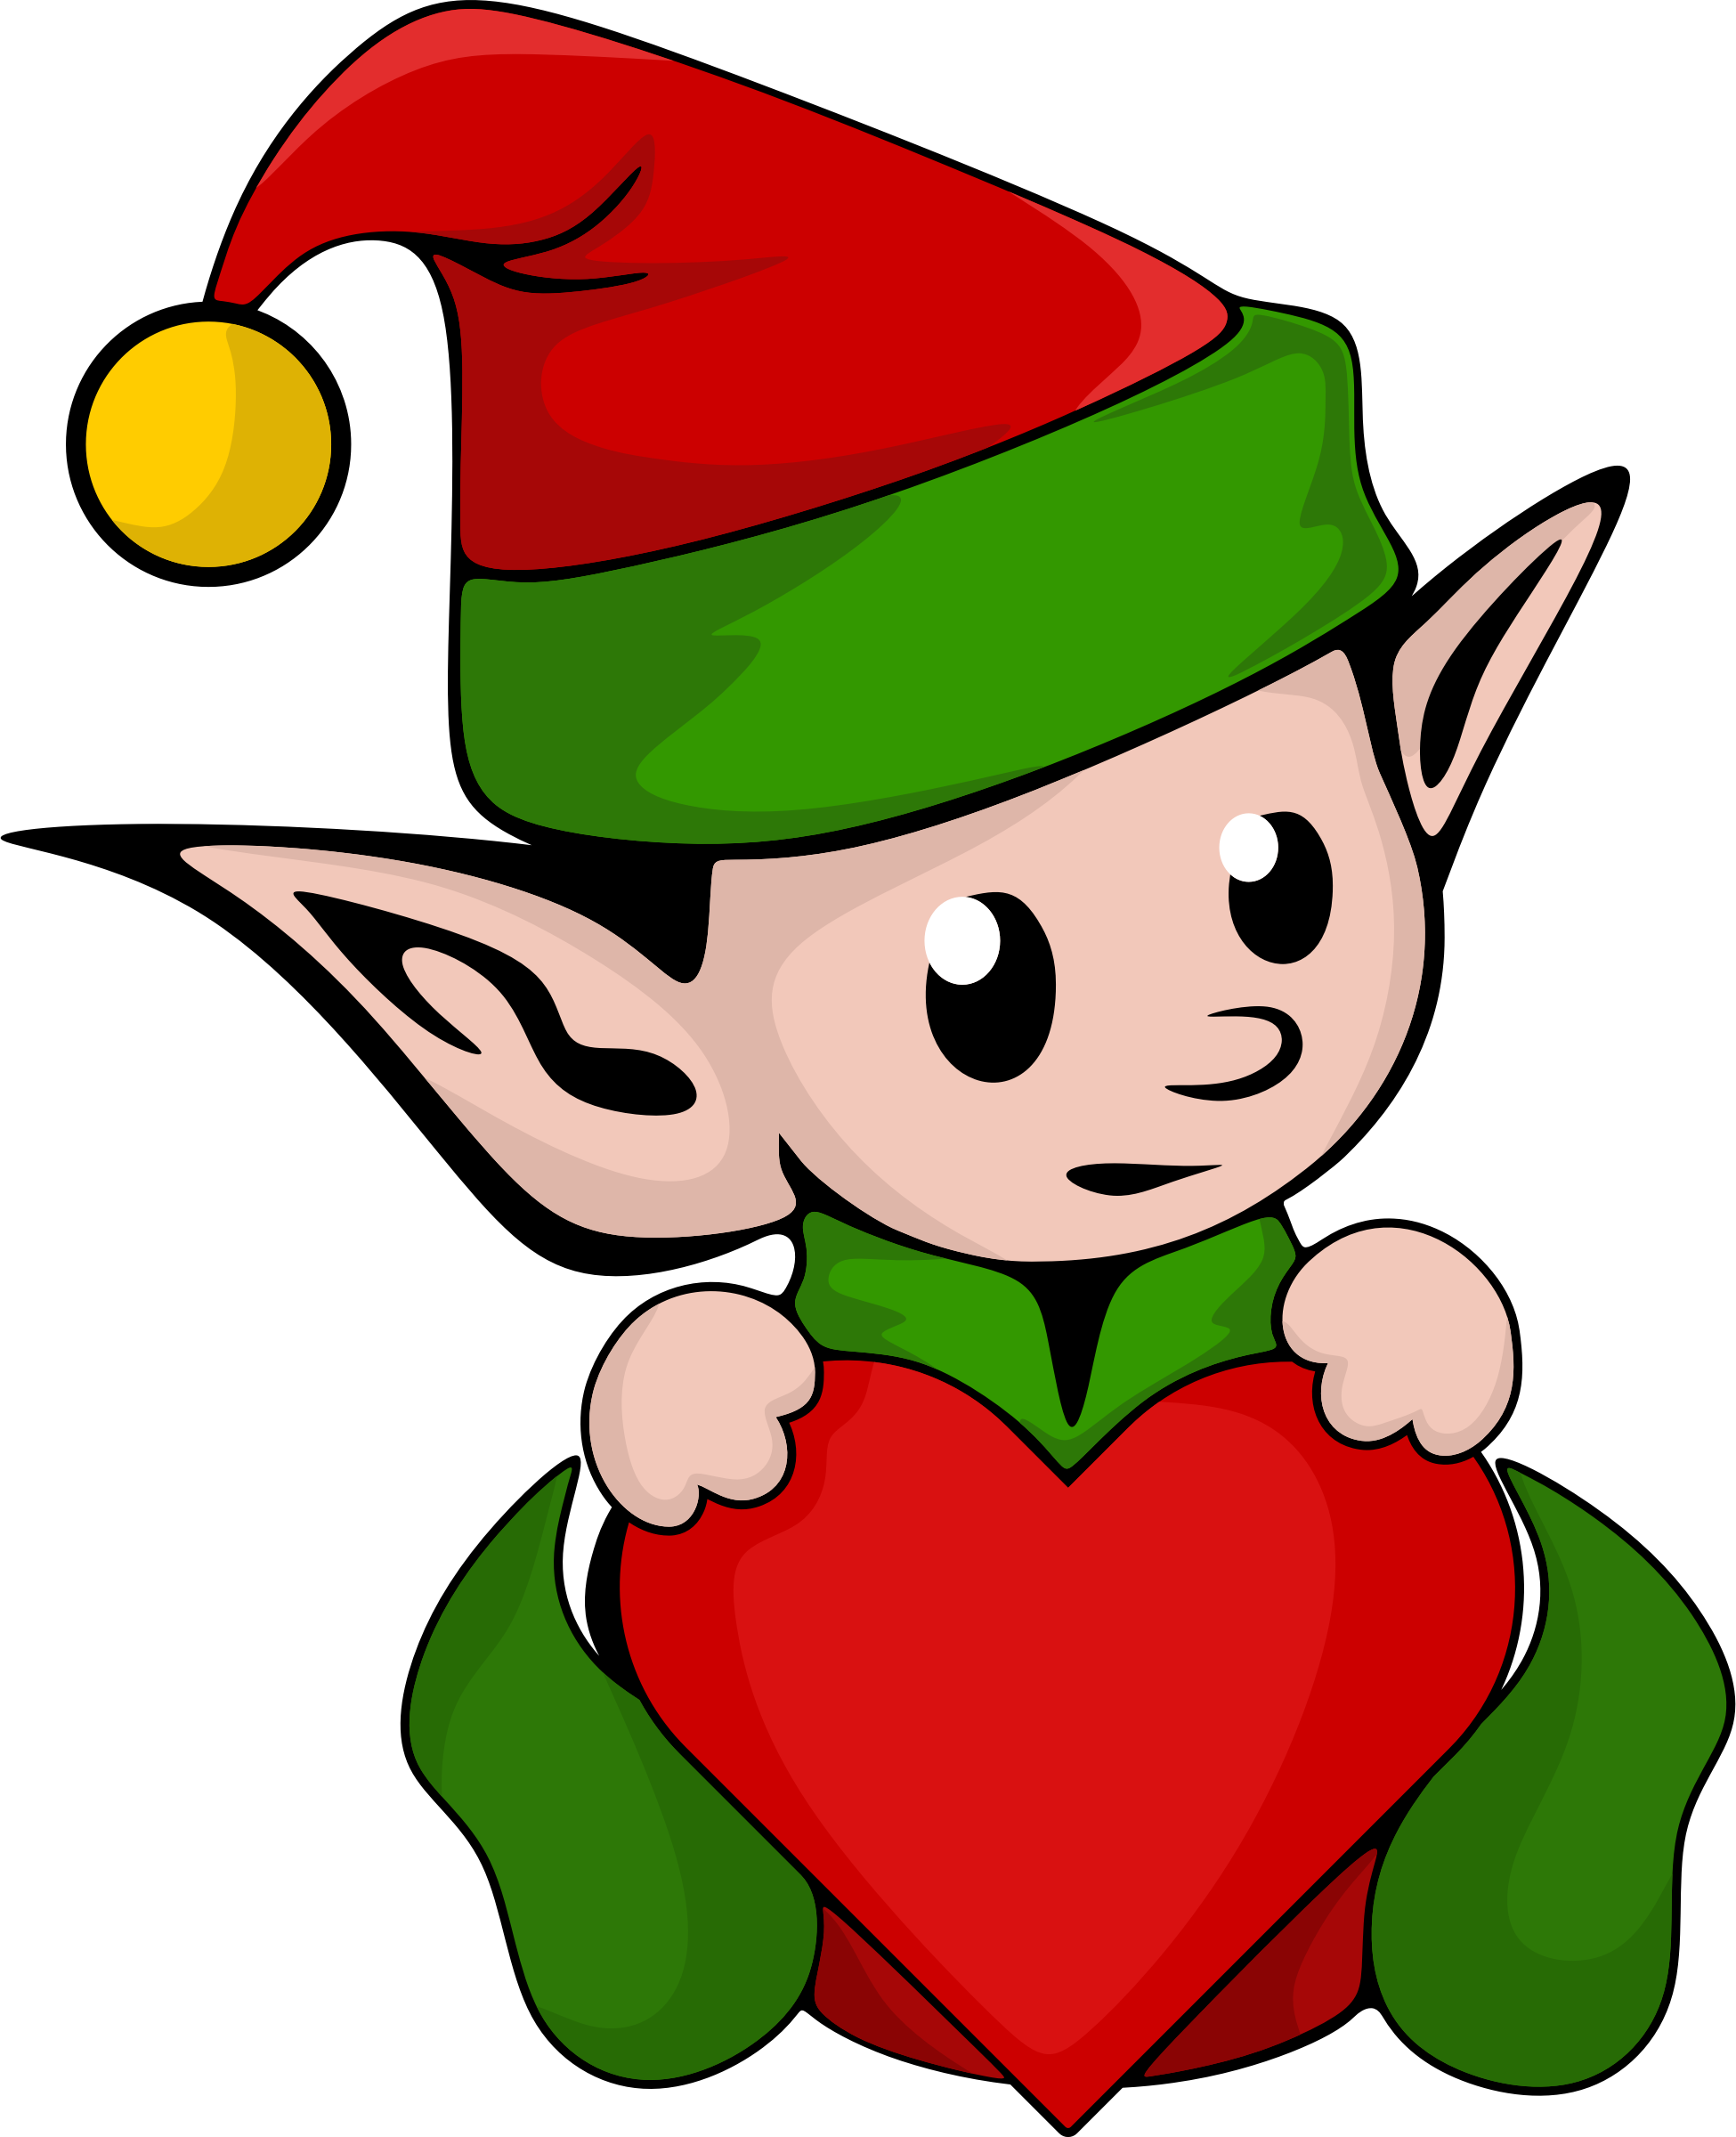 Elves clipart cut out. Cute elf at getdrawings